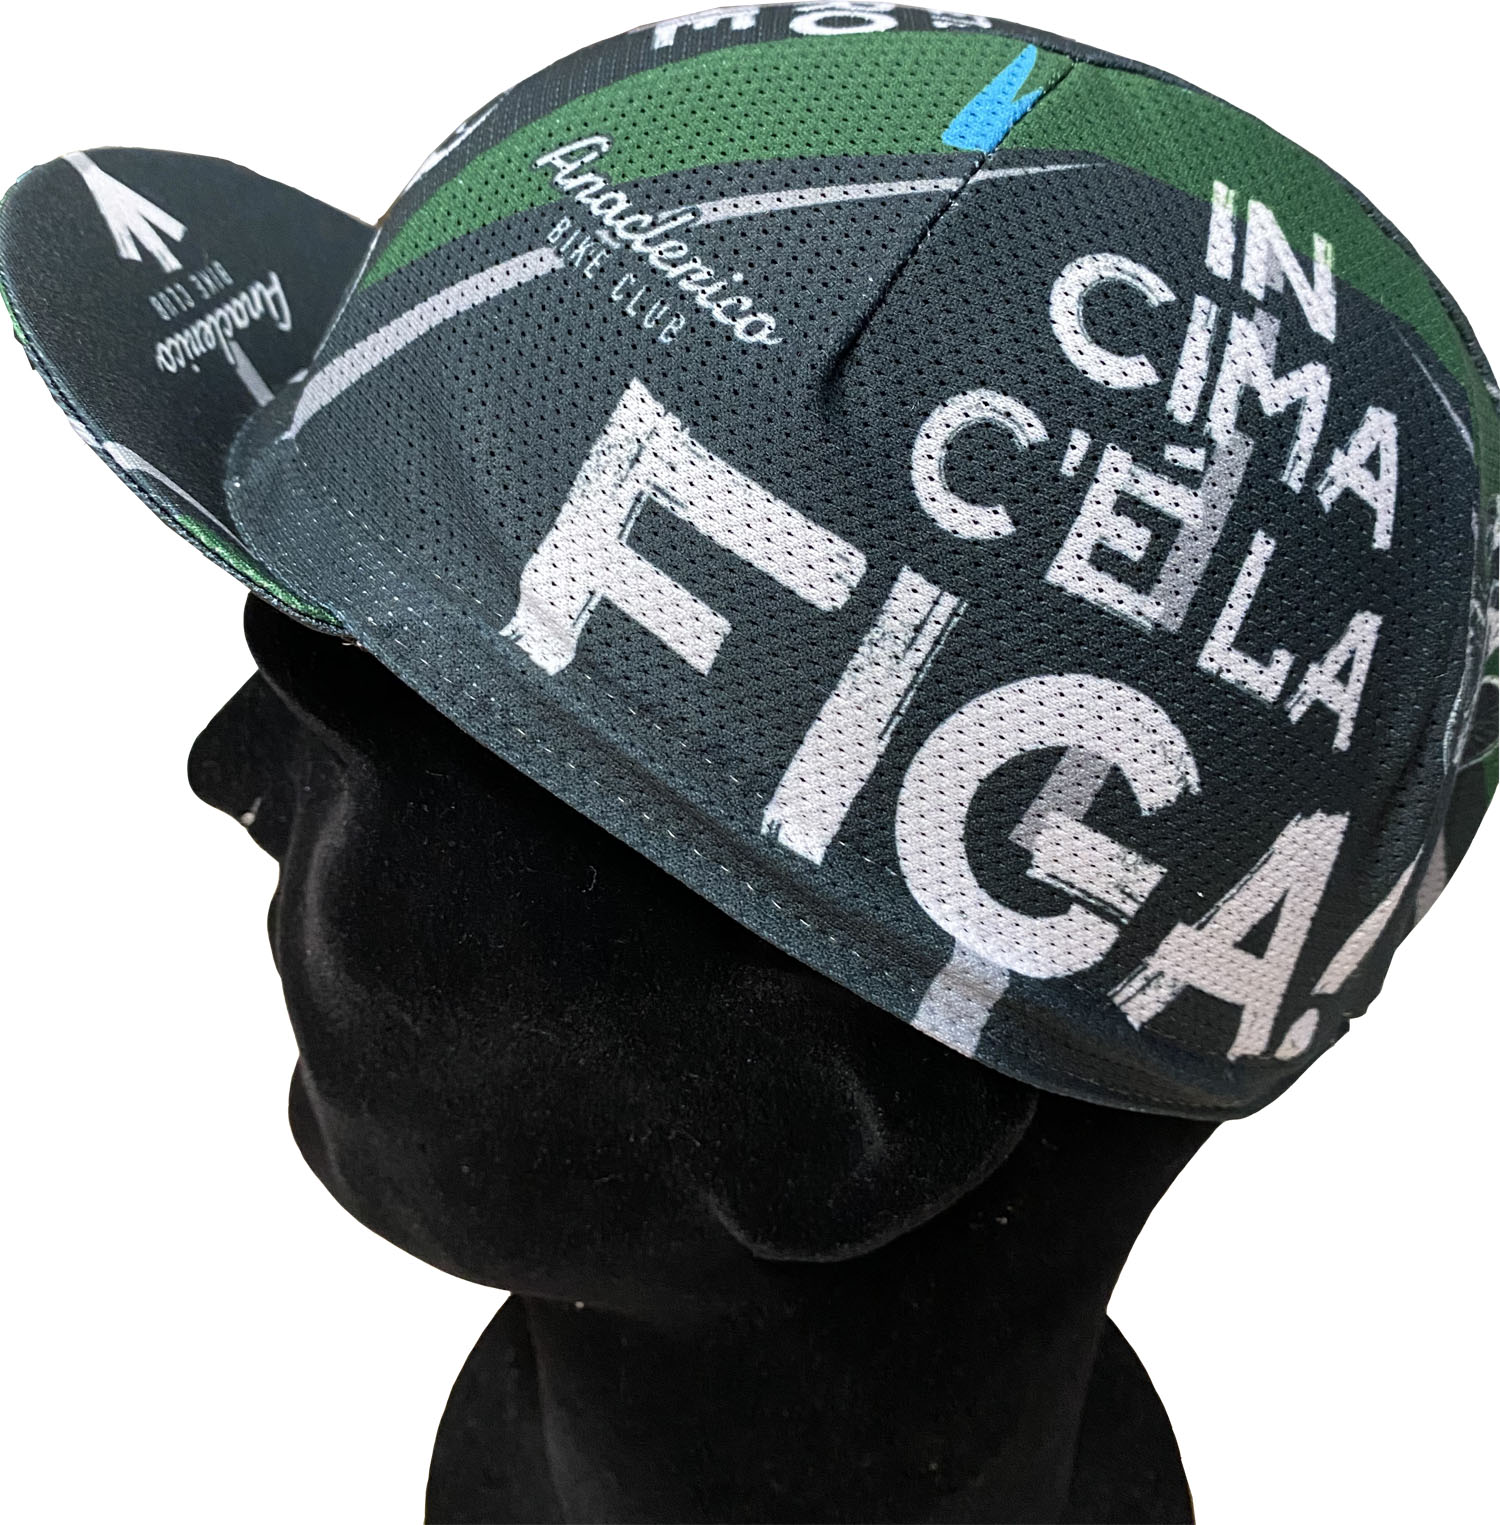 Cycling Cap ABC Anaclerico Sports IN CIMA C